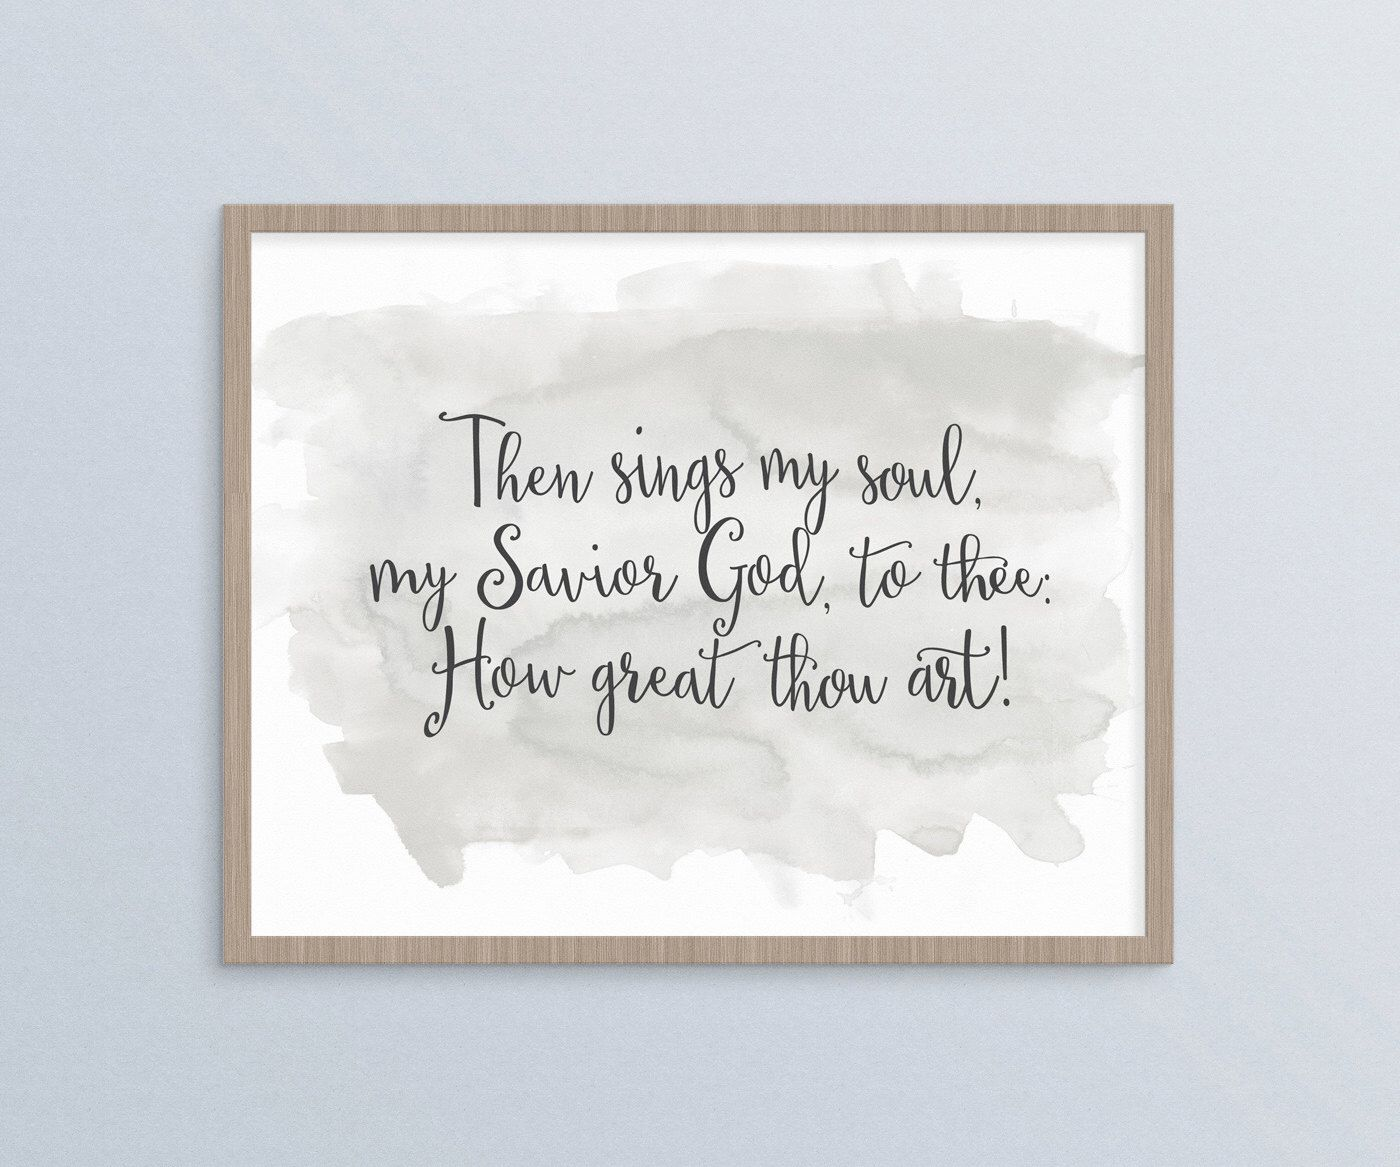 How great thou art hymn lyrics song quote christian